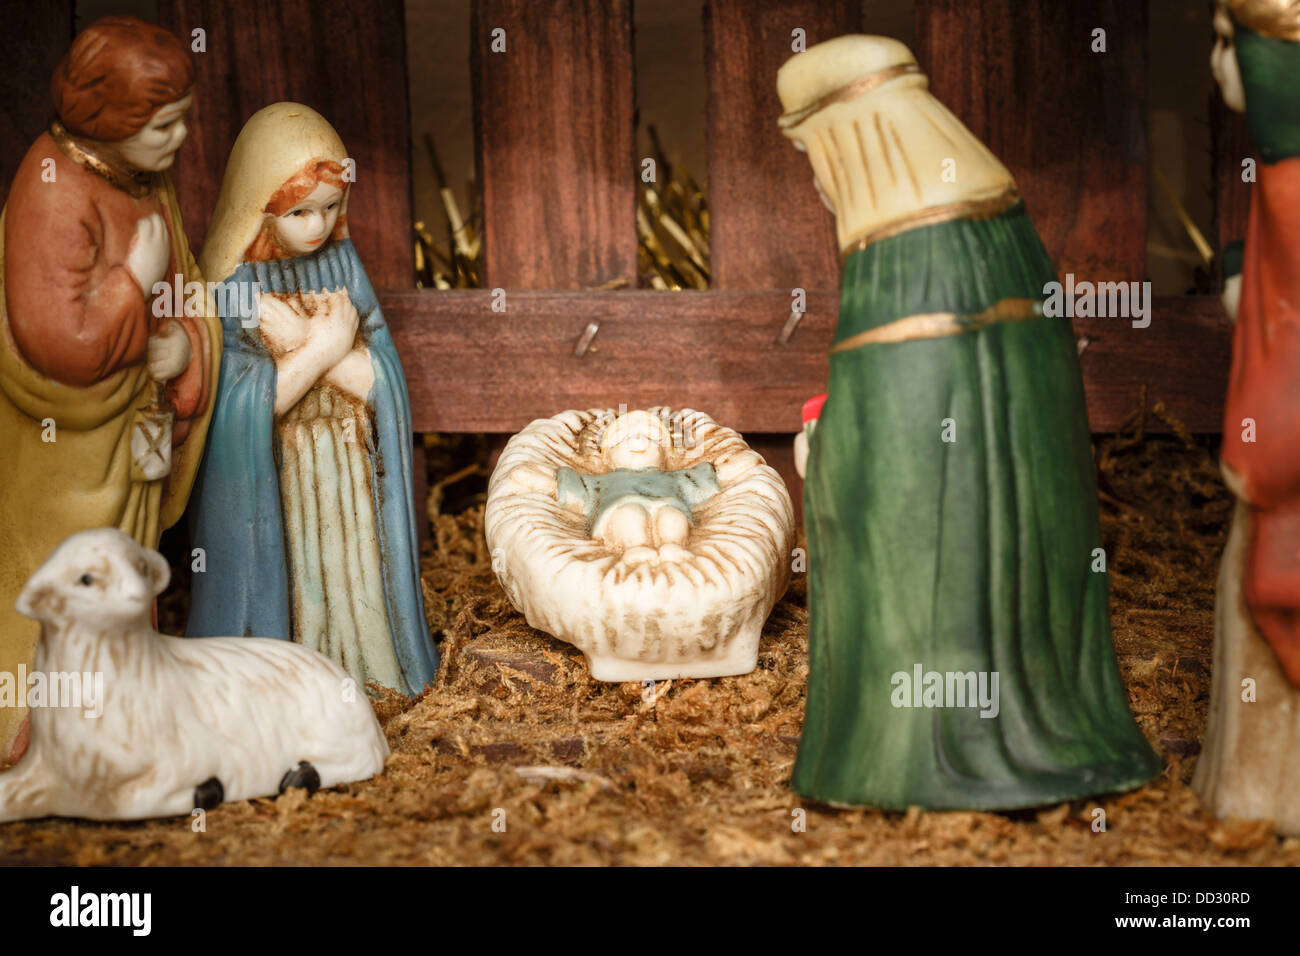 Closeup of figures from a nativity scene or set with Jesus Christ, Mary and Joseph Stock Photo